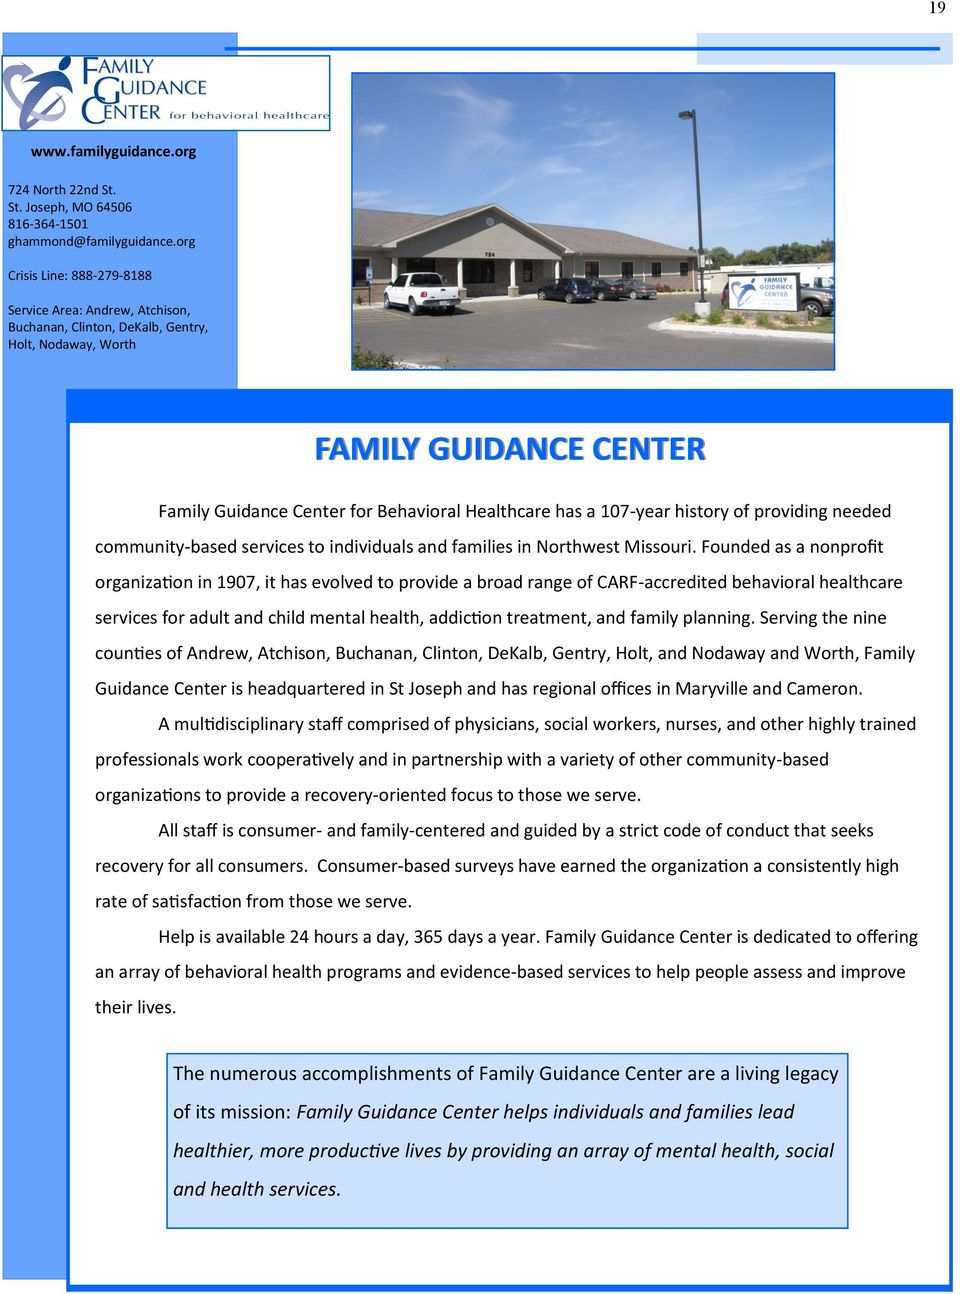 substance abuse prevention community assessment of springfield missouri Behavioral health treatment services locator welcome to the behavioral health treatment services locator, a confidential and anonymous source of information for persons seeking treatment facilities in the united states or us territories for substance abuse/addiction and/or mental health problems.